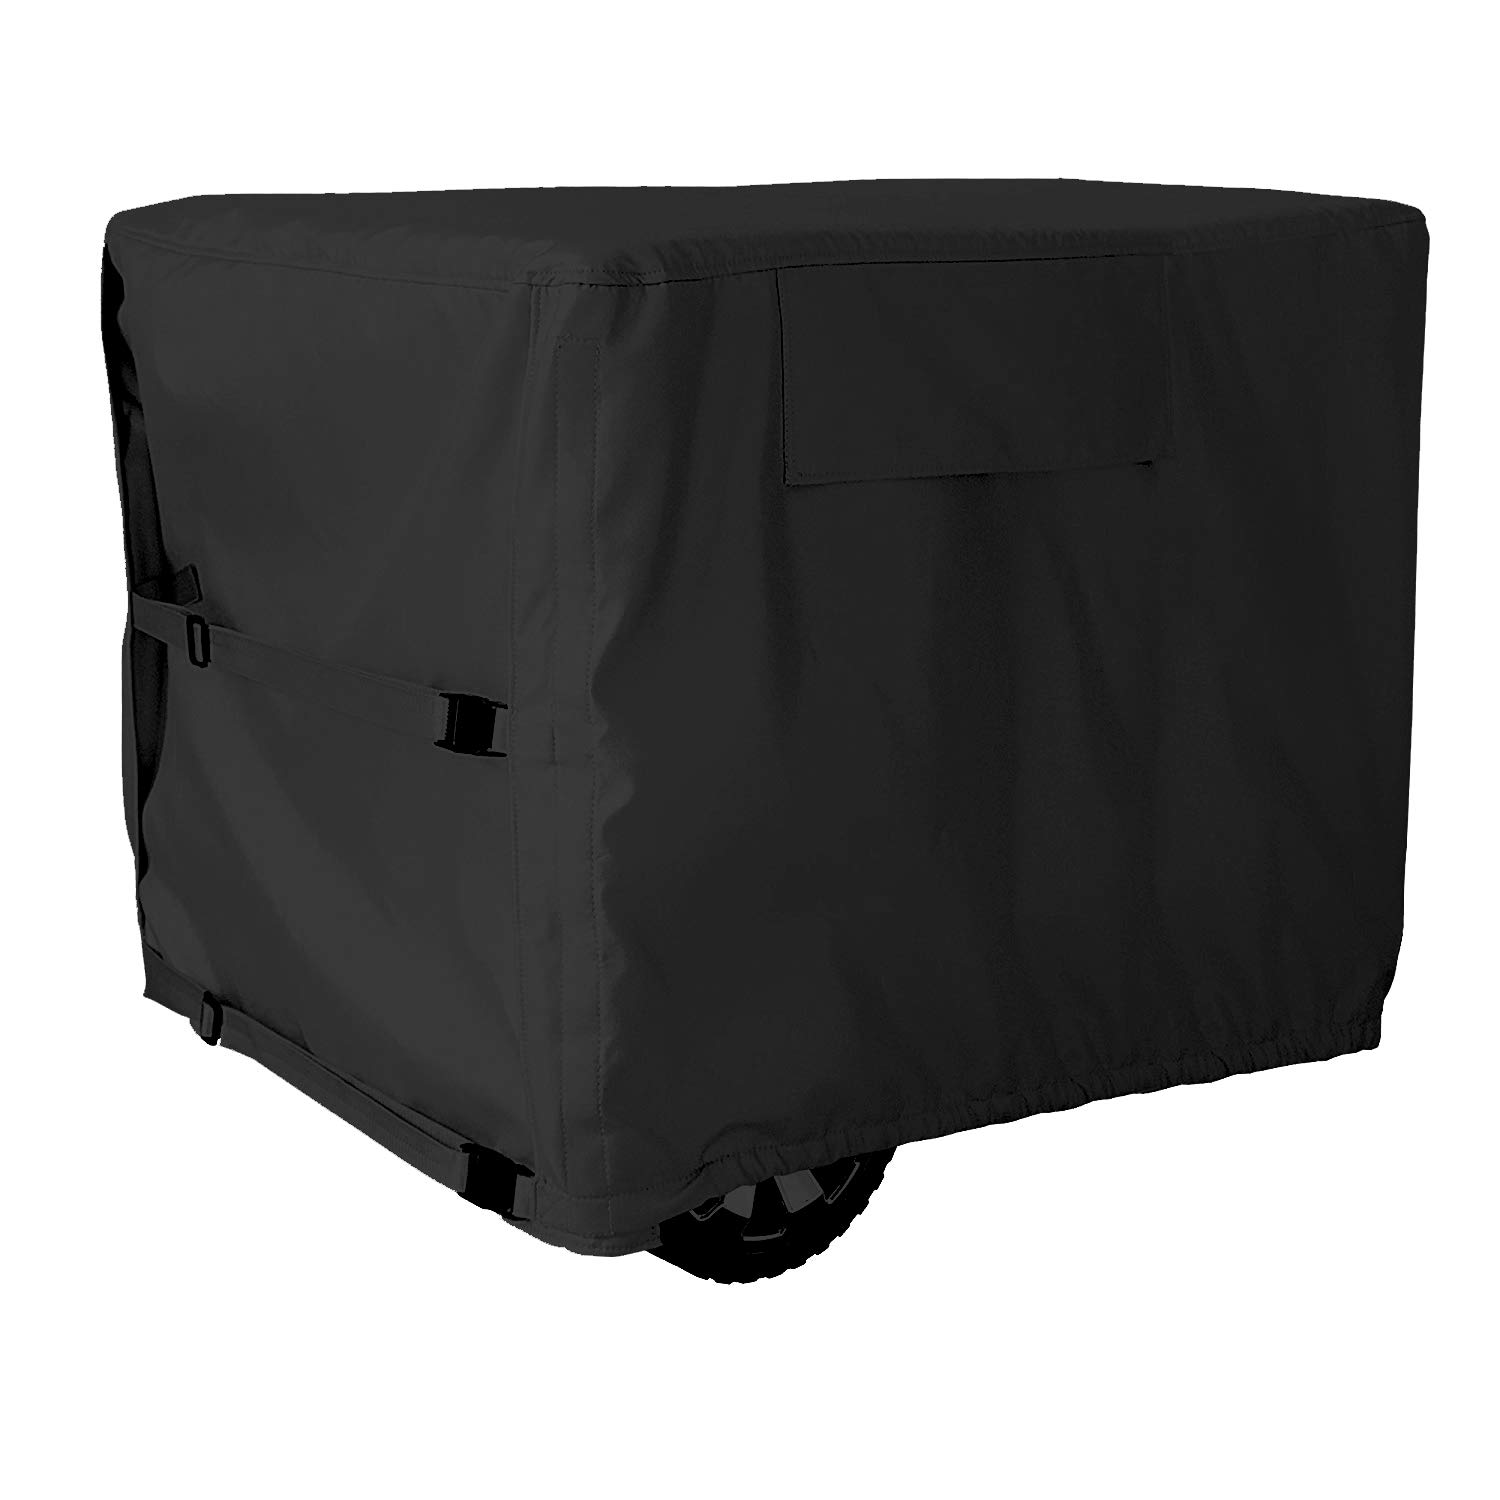 Mr.You Universal Generator Cover fit for Most Generators 5500-15000 Watt - 28x38x30 inch(Black) by Mr.You